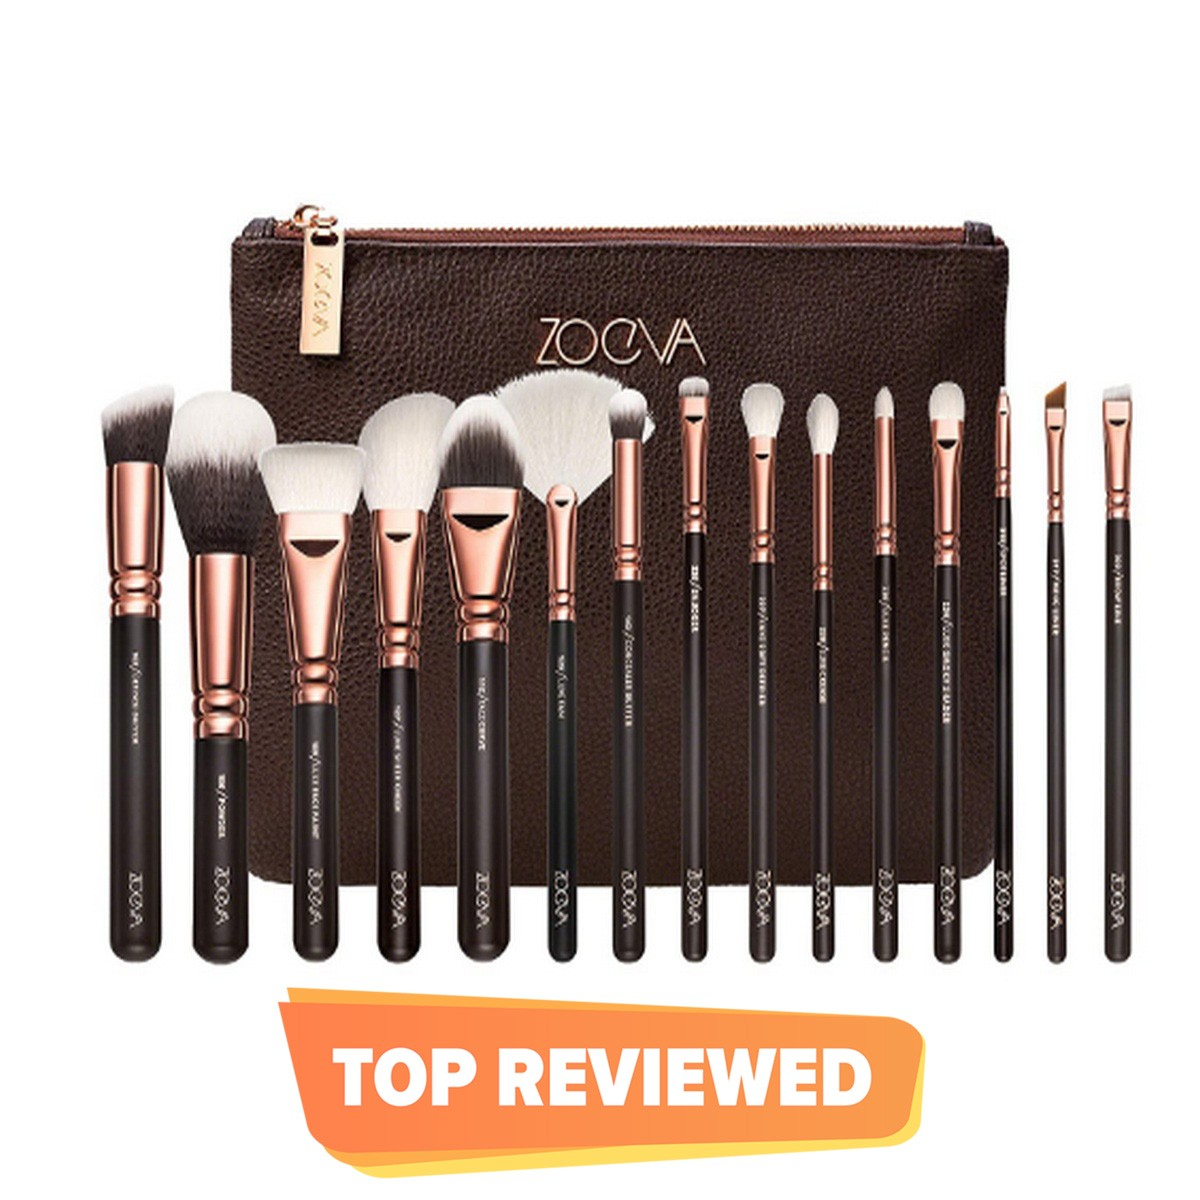 Zoeva Makeup Brushes,15 Pieces  With Leather Pouch